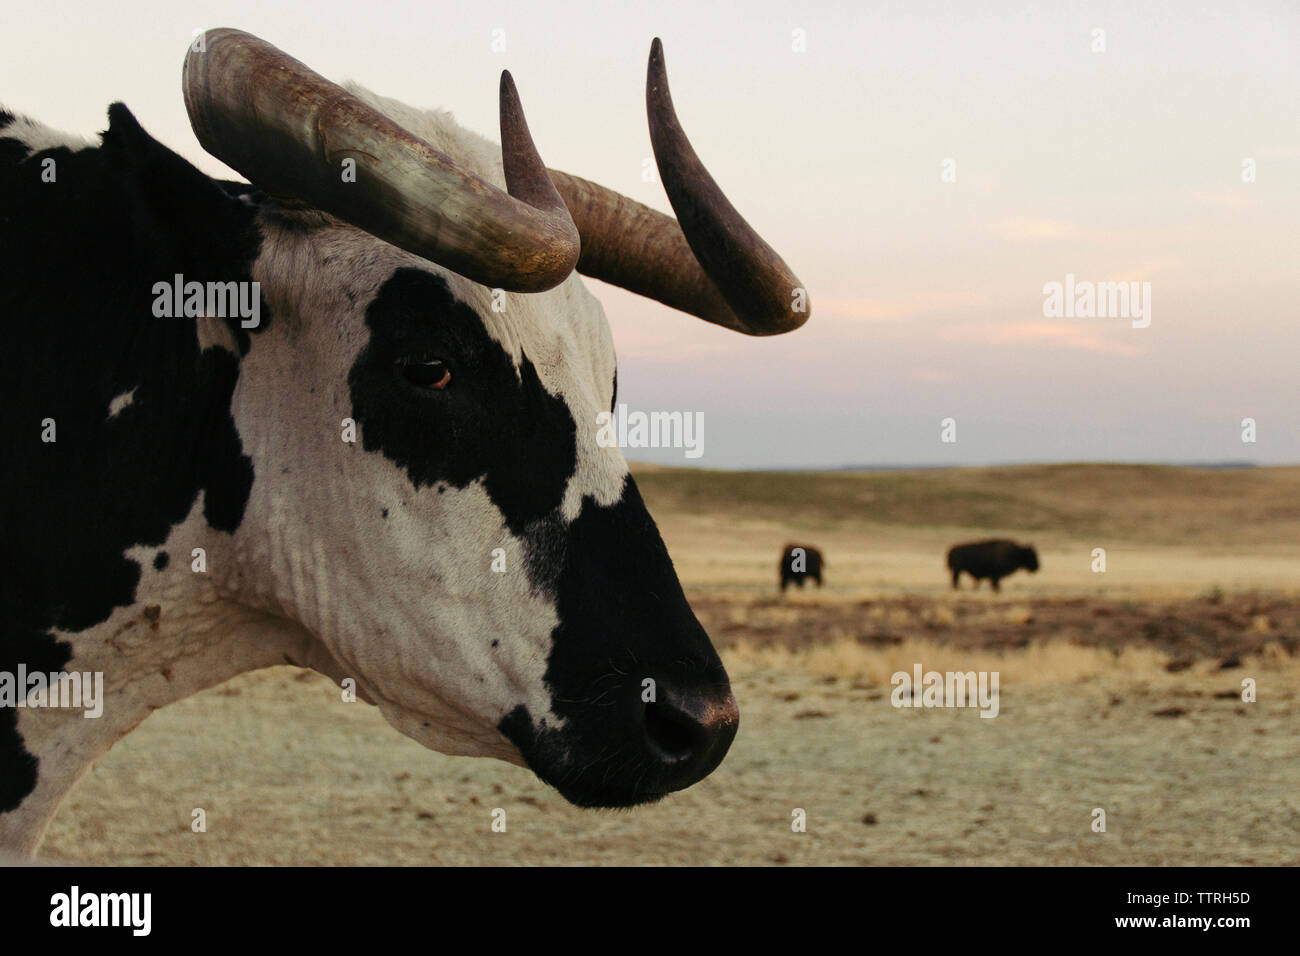 Close-up of buffalo with American bison in background Stock Photo